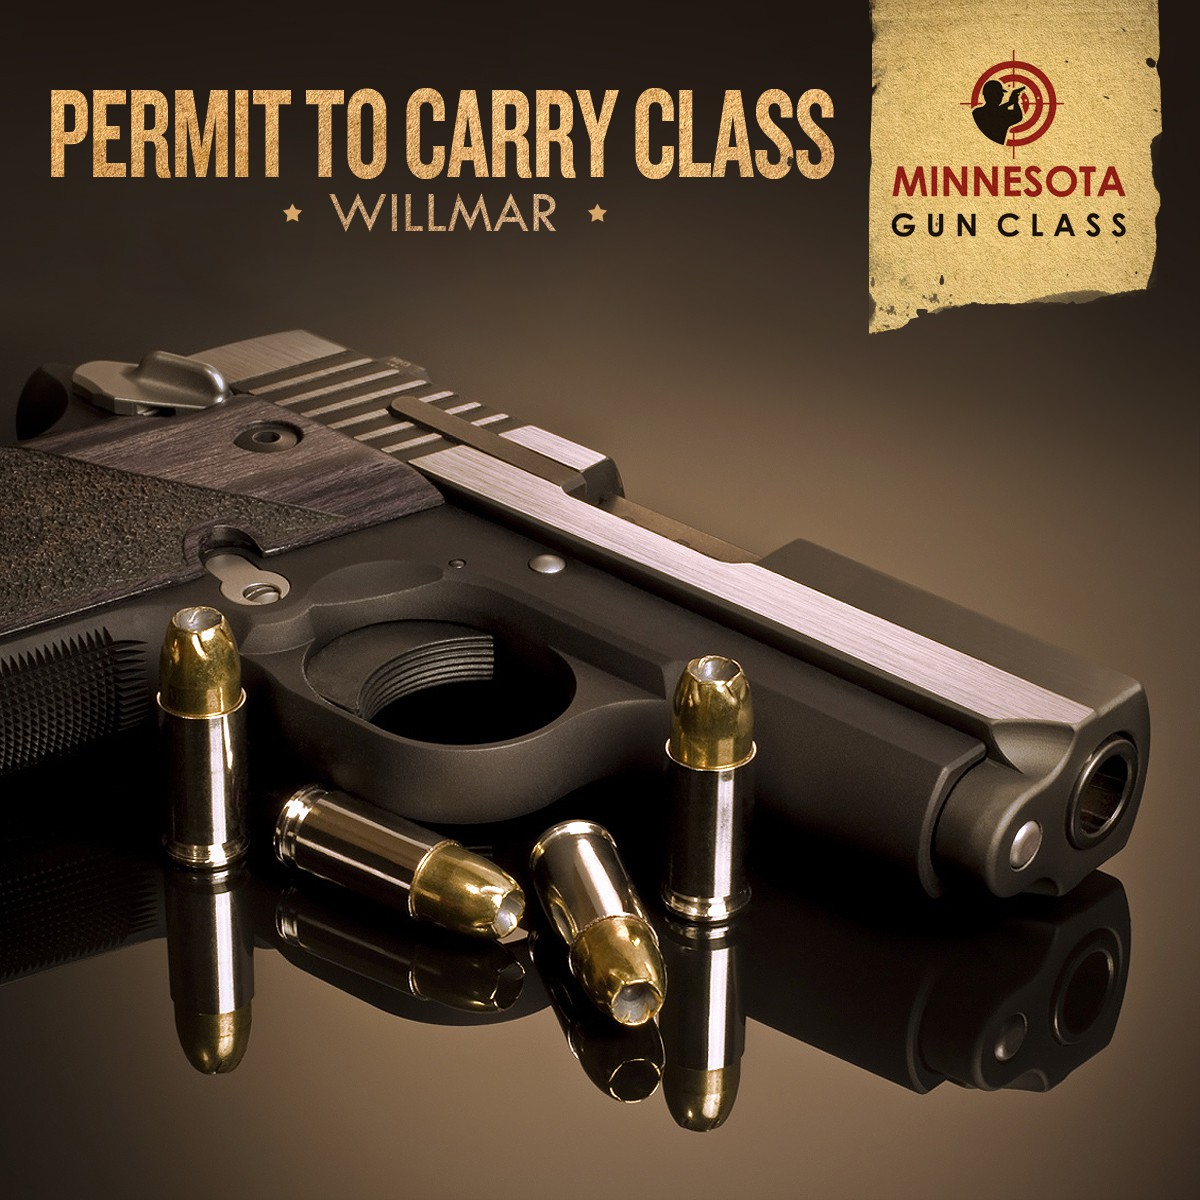 Facebook ad design for Permit to Carry Class - ad 11